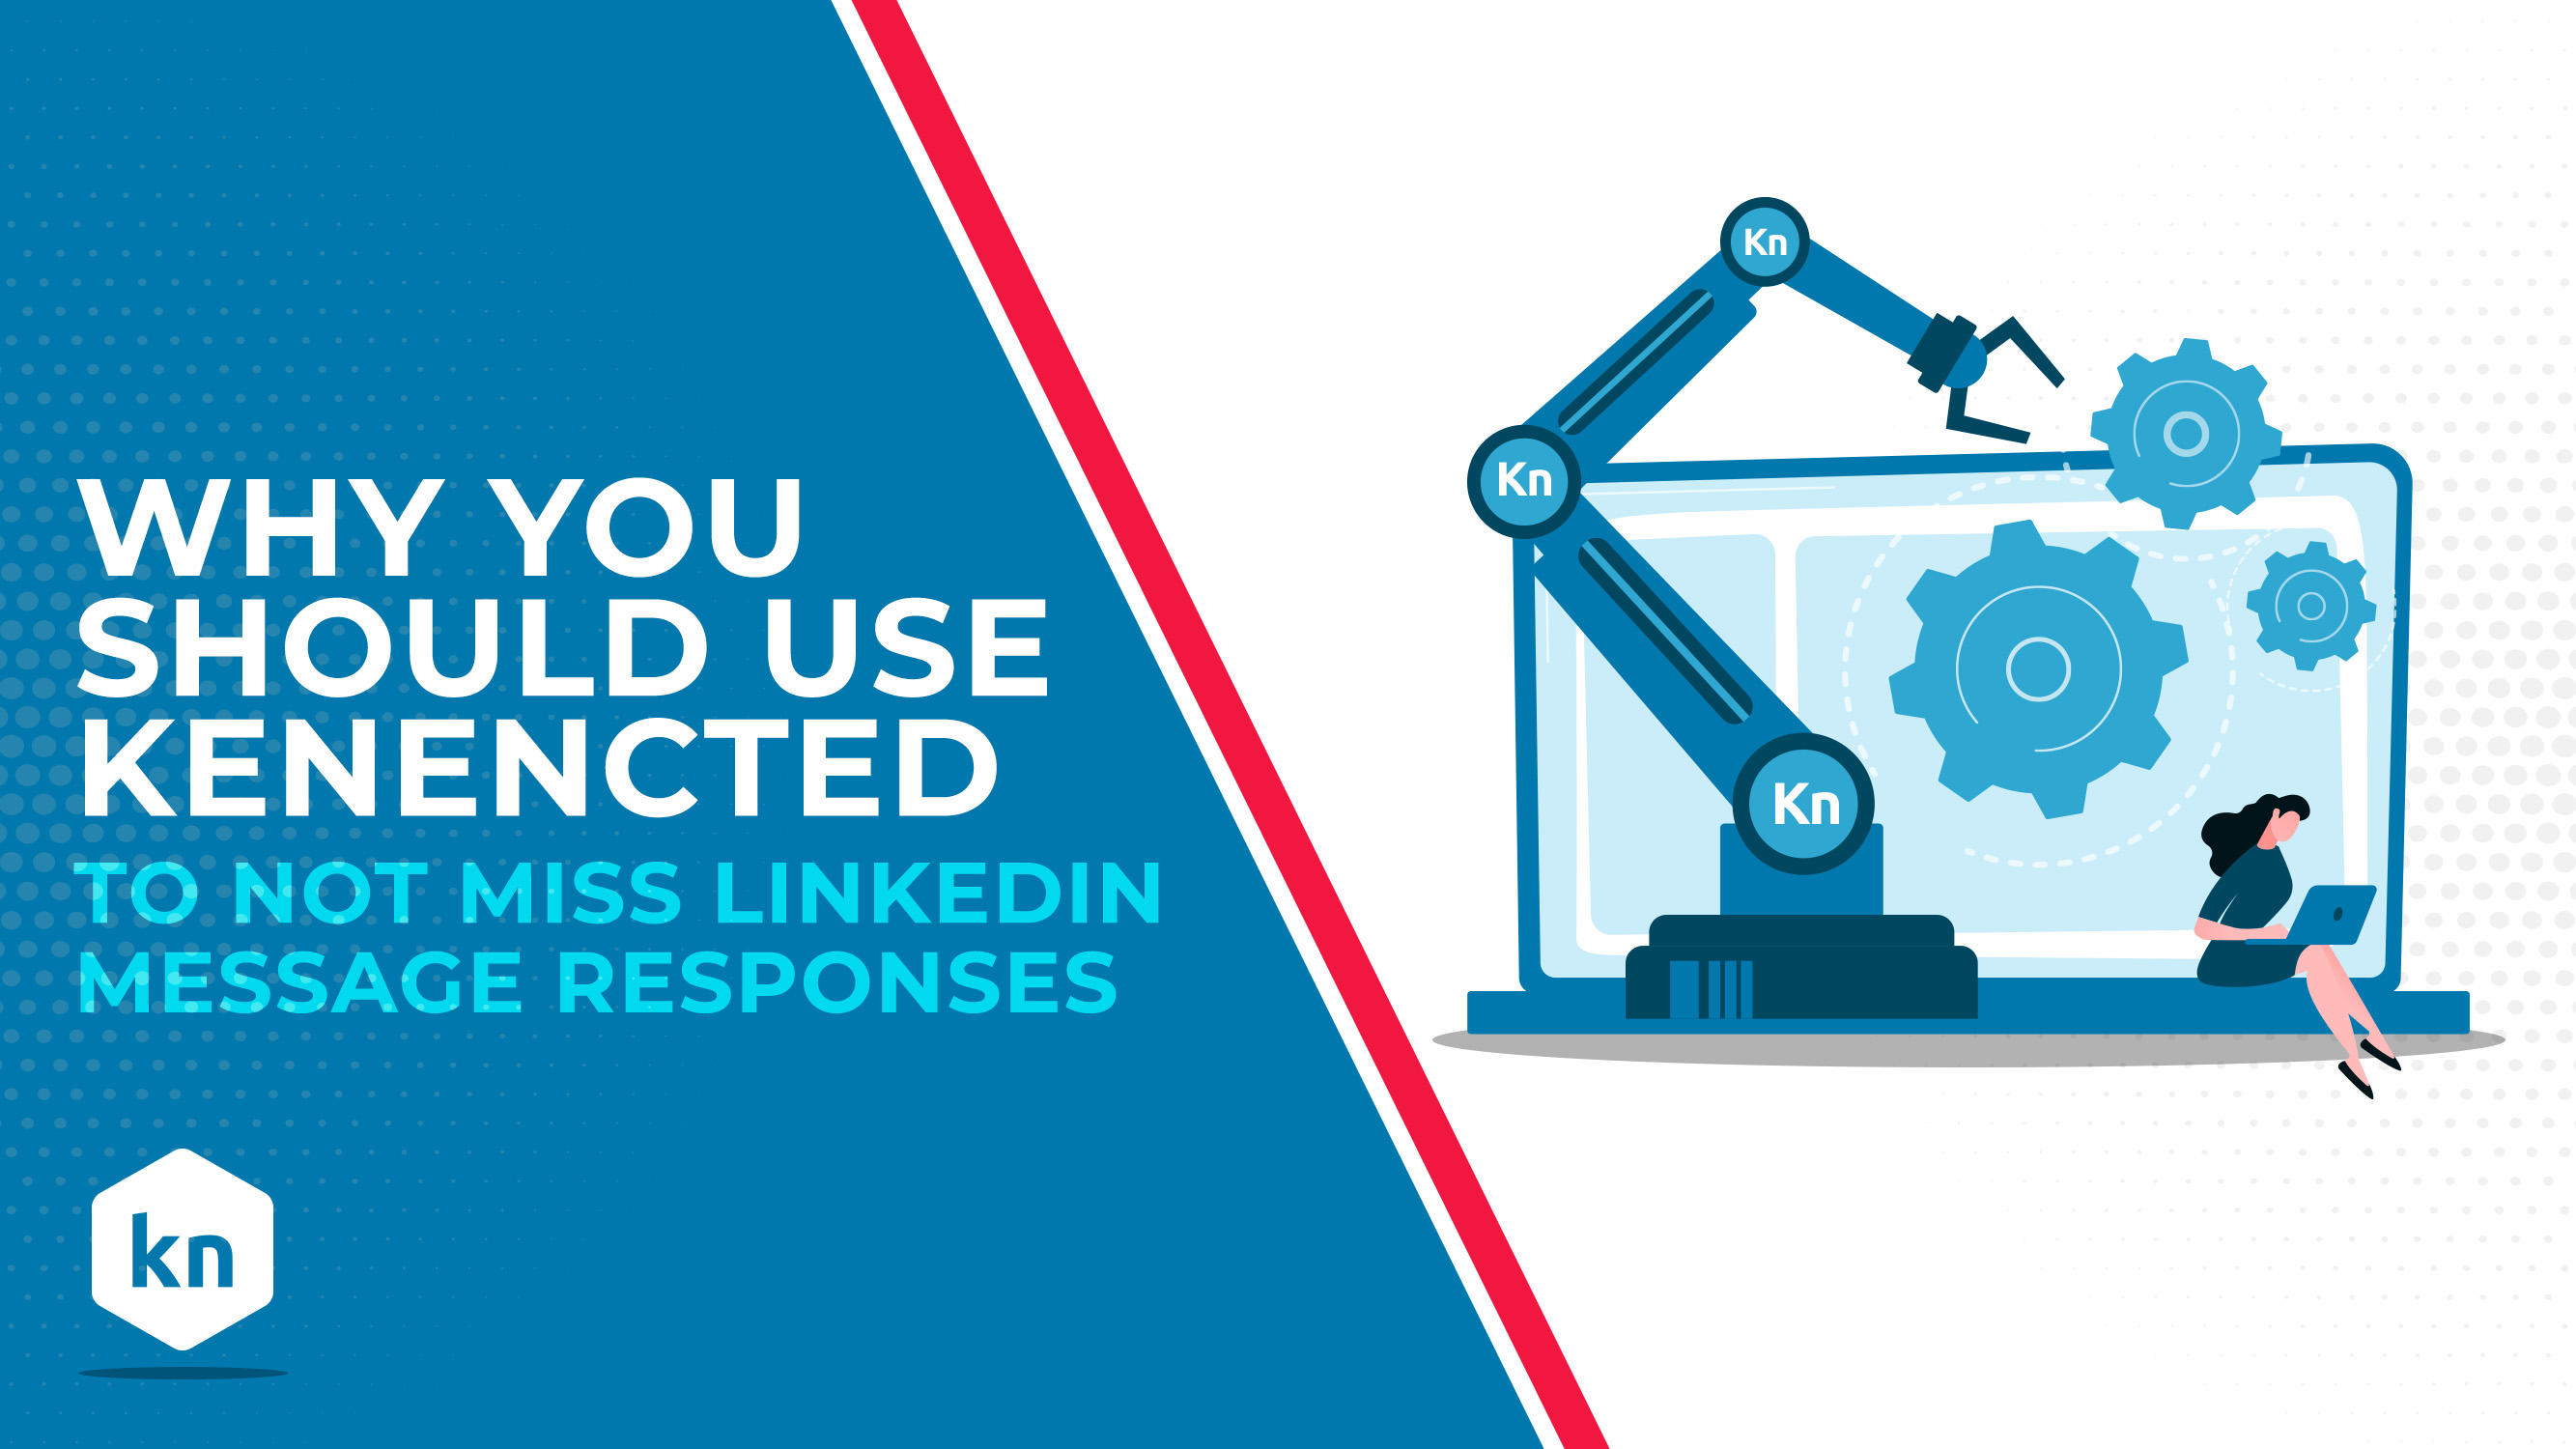 Why You Should Use Kennected To Not Miss LinkedIn Message Responses